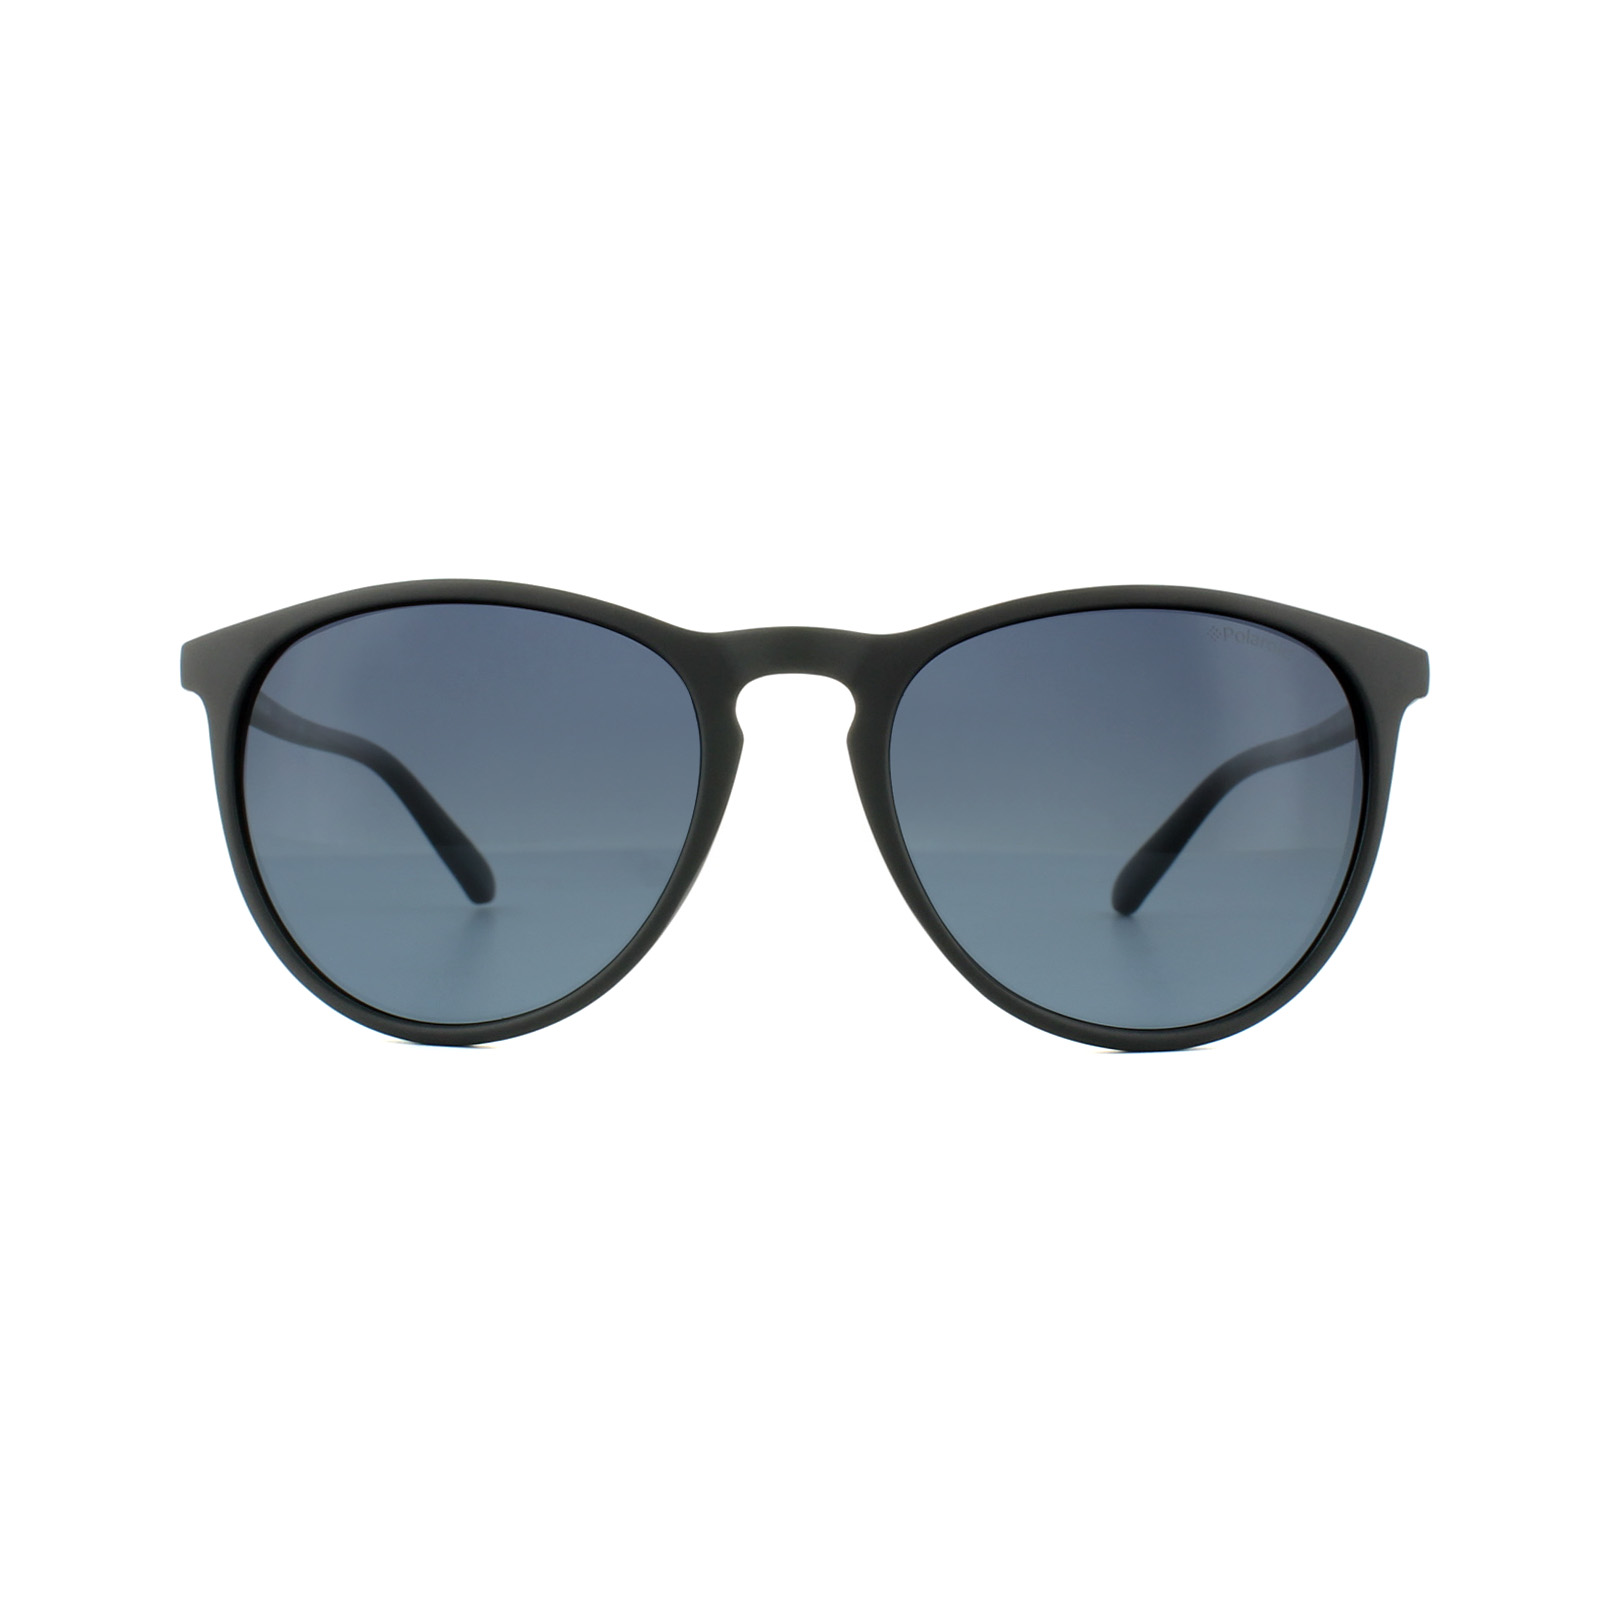 Sentinel Polaroid Sunglasses PLD 6003 N S DL5 WJ Matt Black Grey Gradient  Polarized c804836bfa